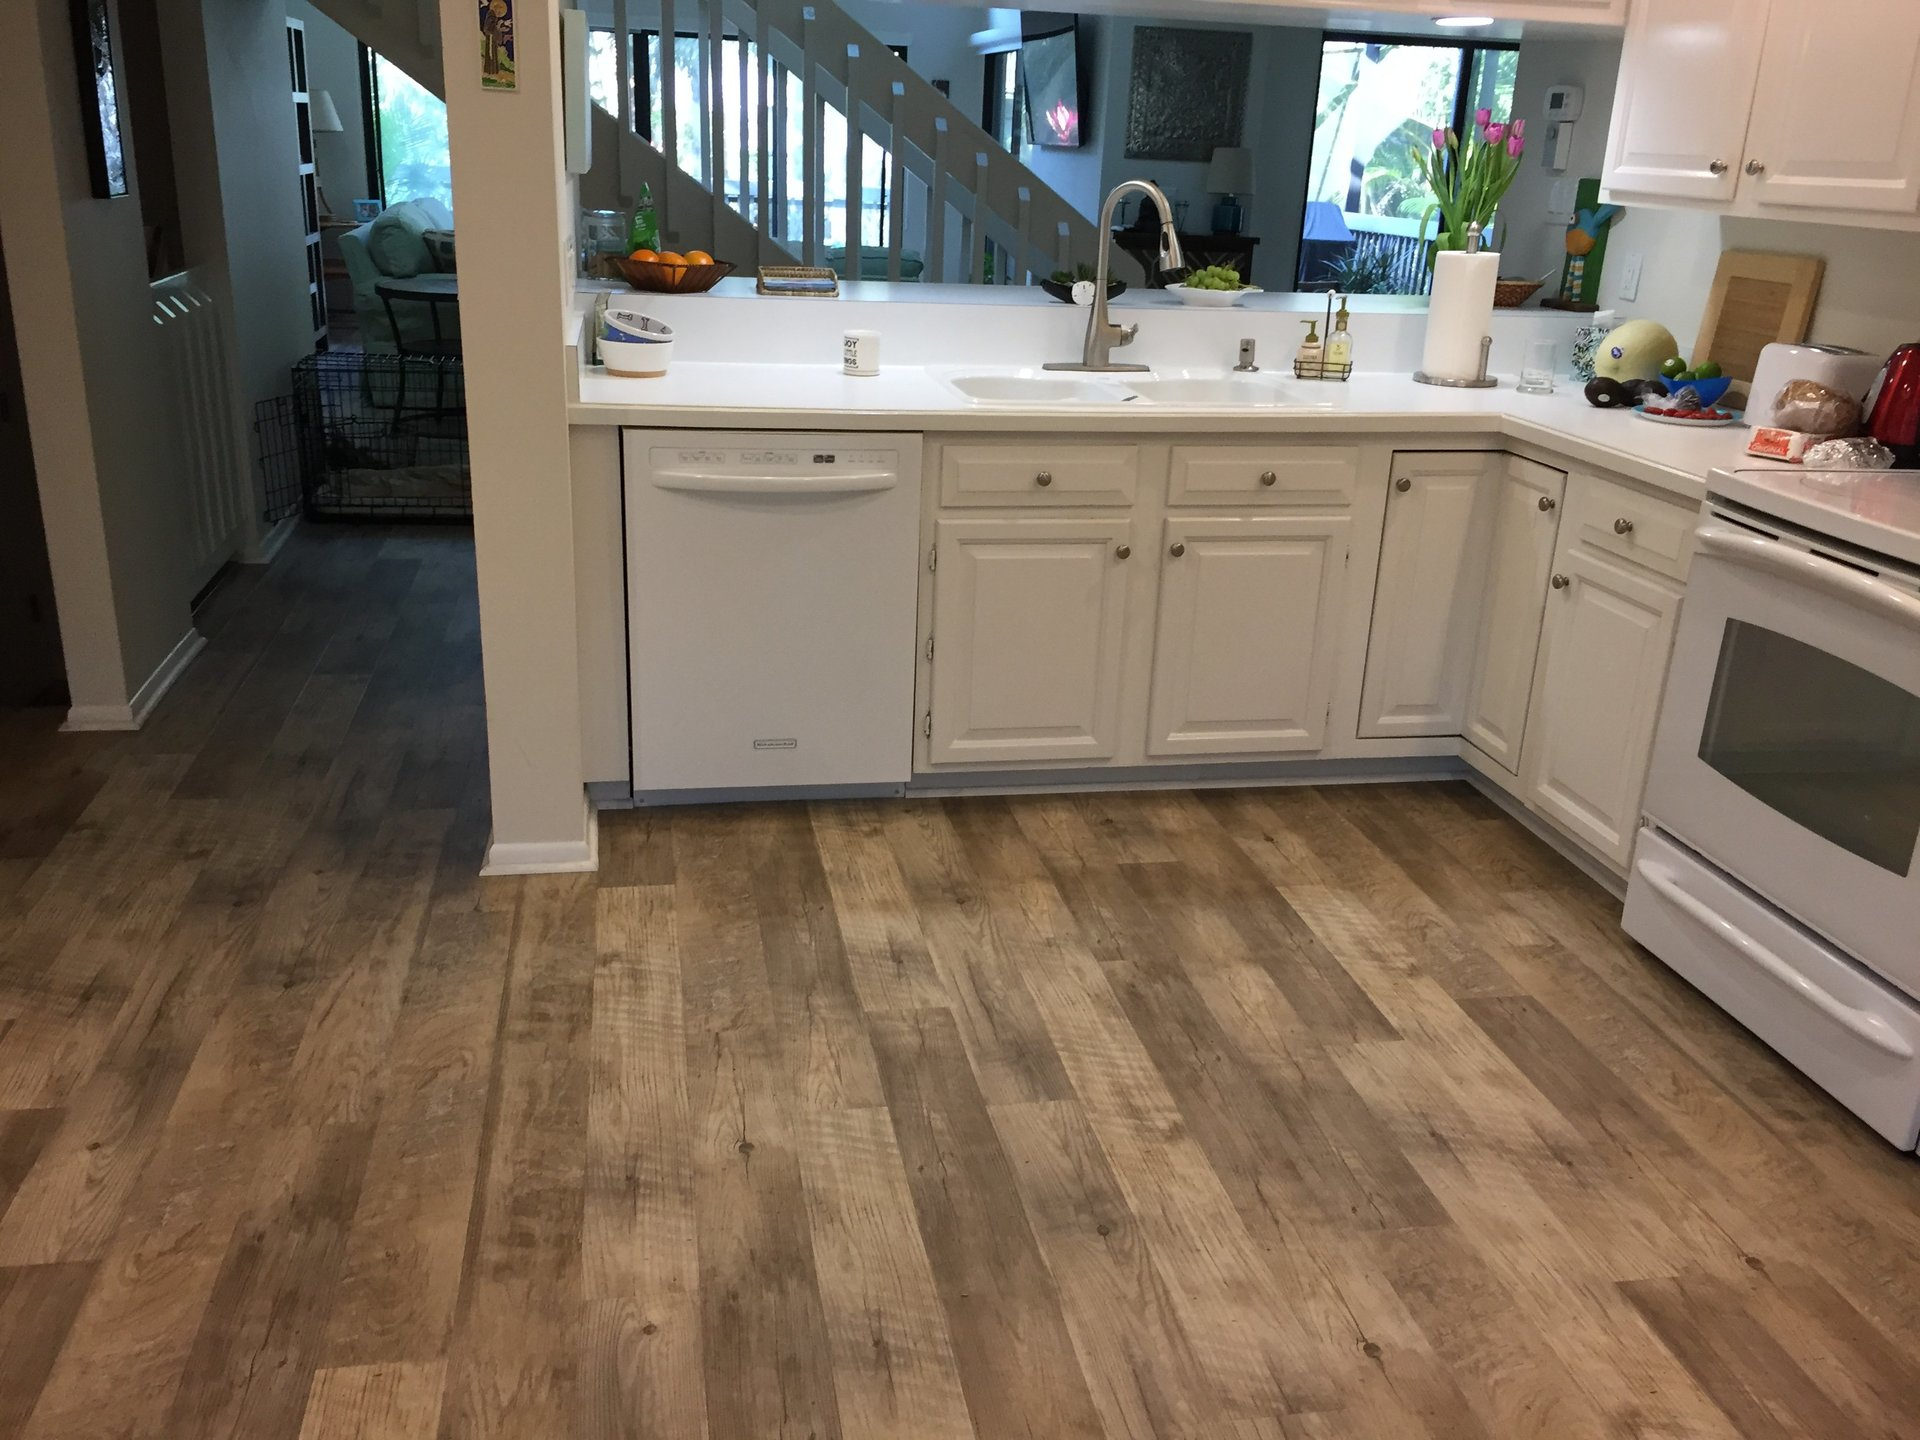 Mannington laminate flooring image of mannington wide for Mannington hardwood floors